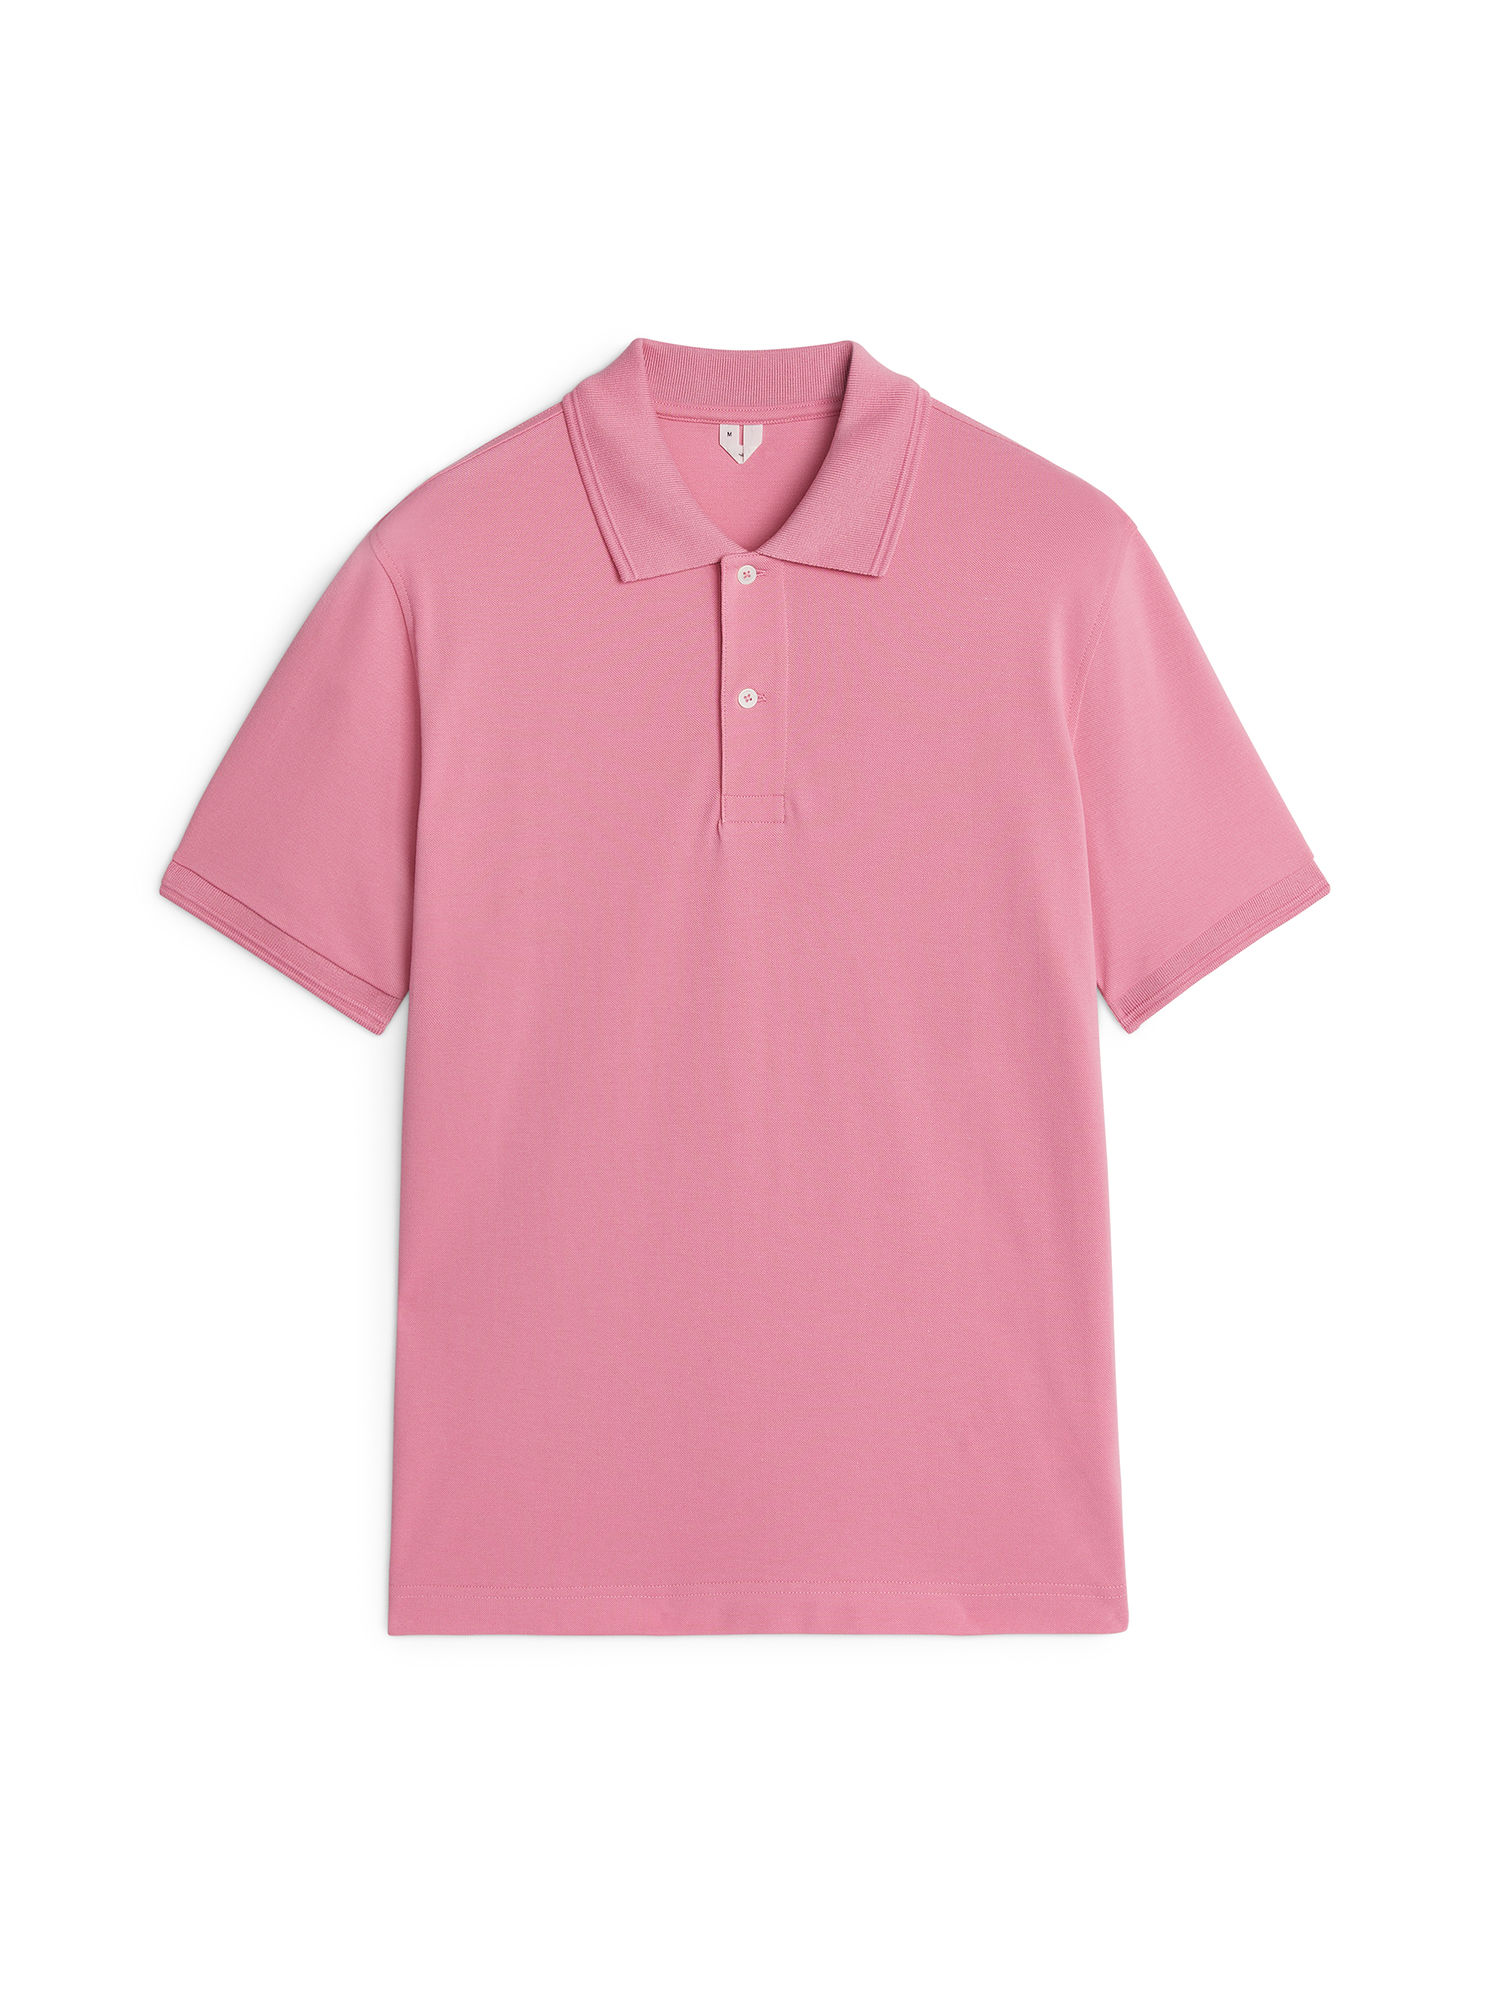 Fabric Swatch image of Arket piqué polo shirt in pink